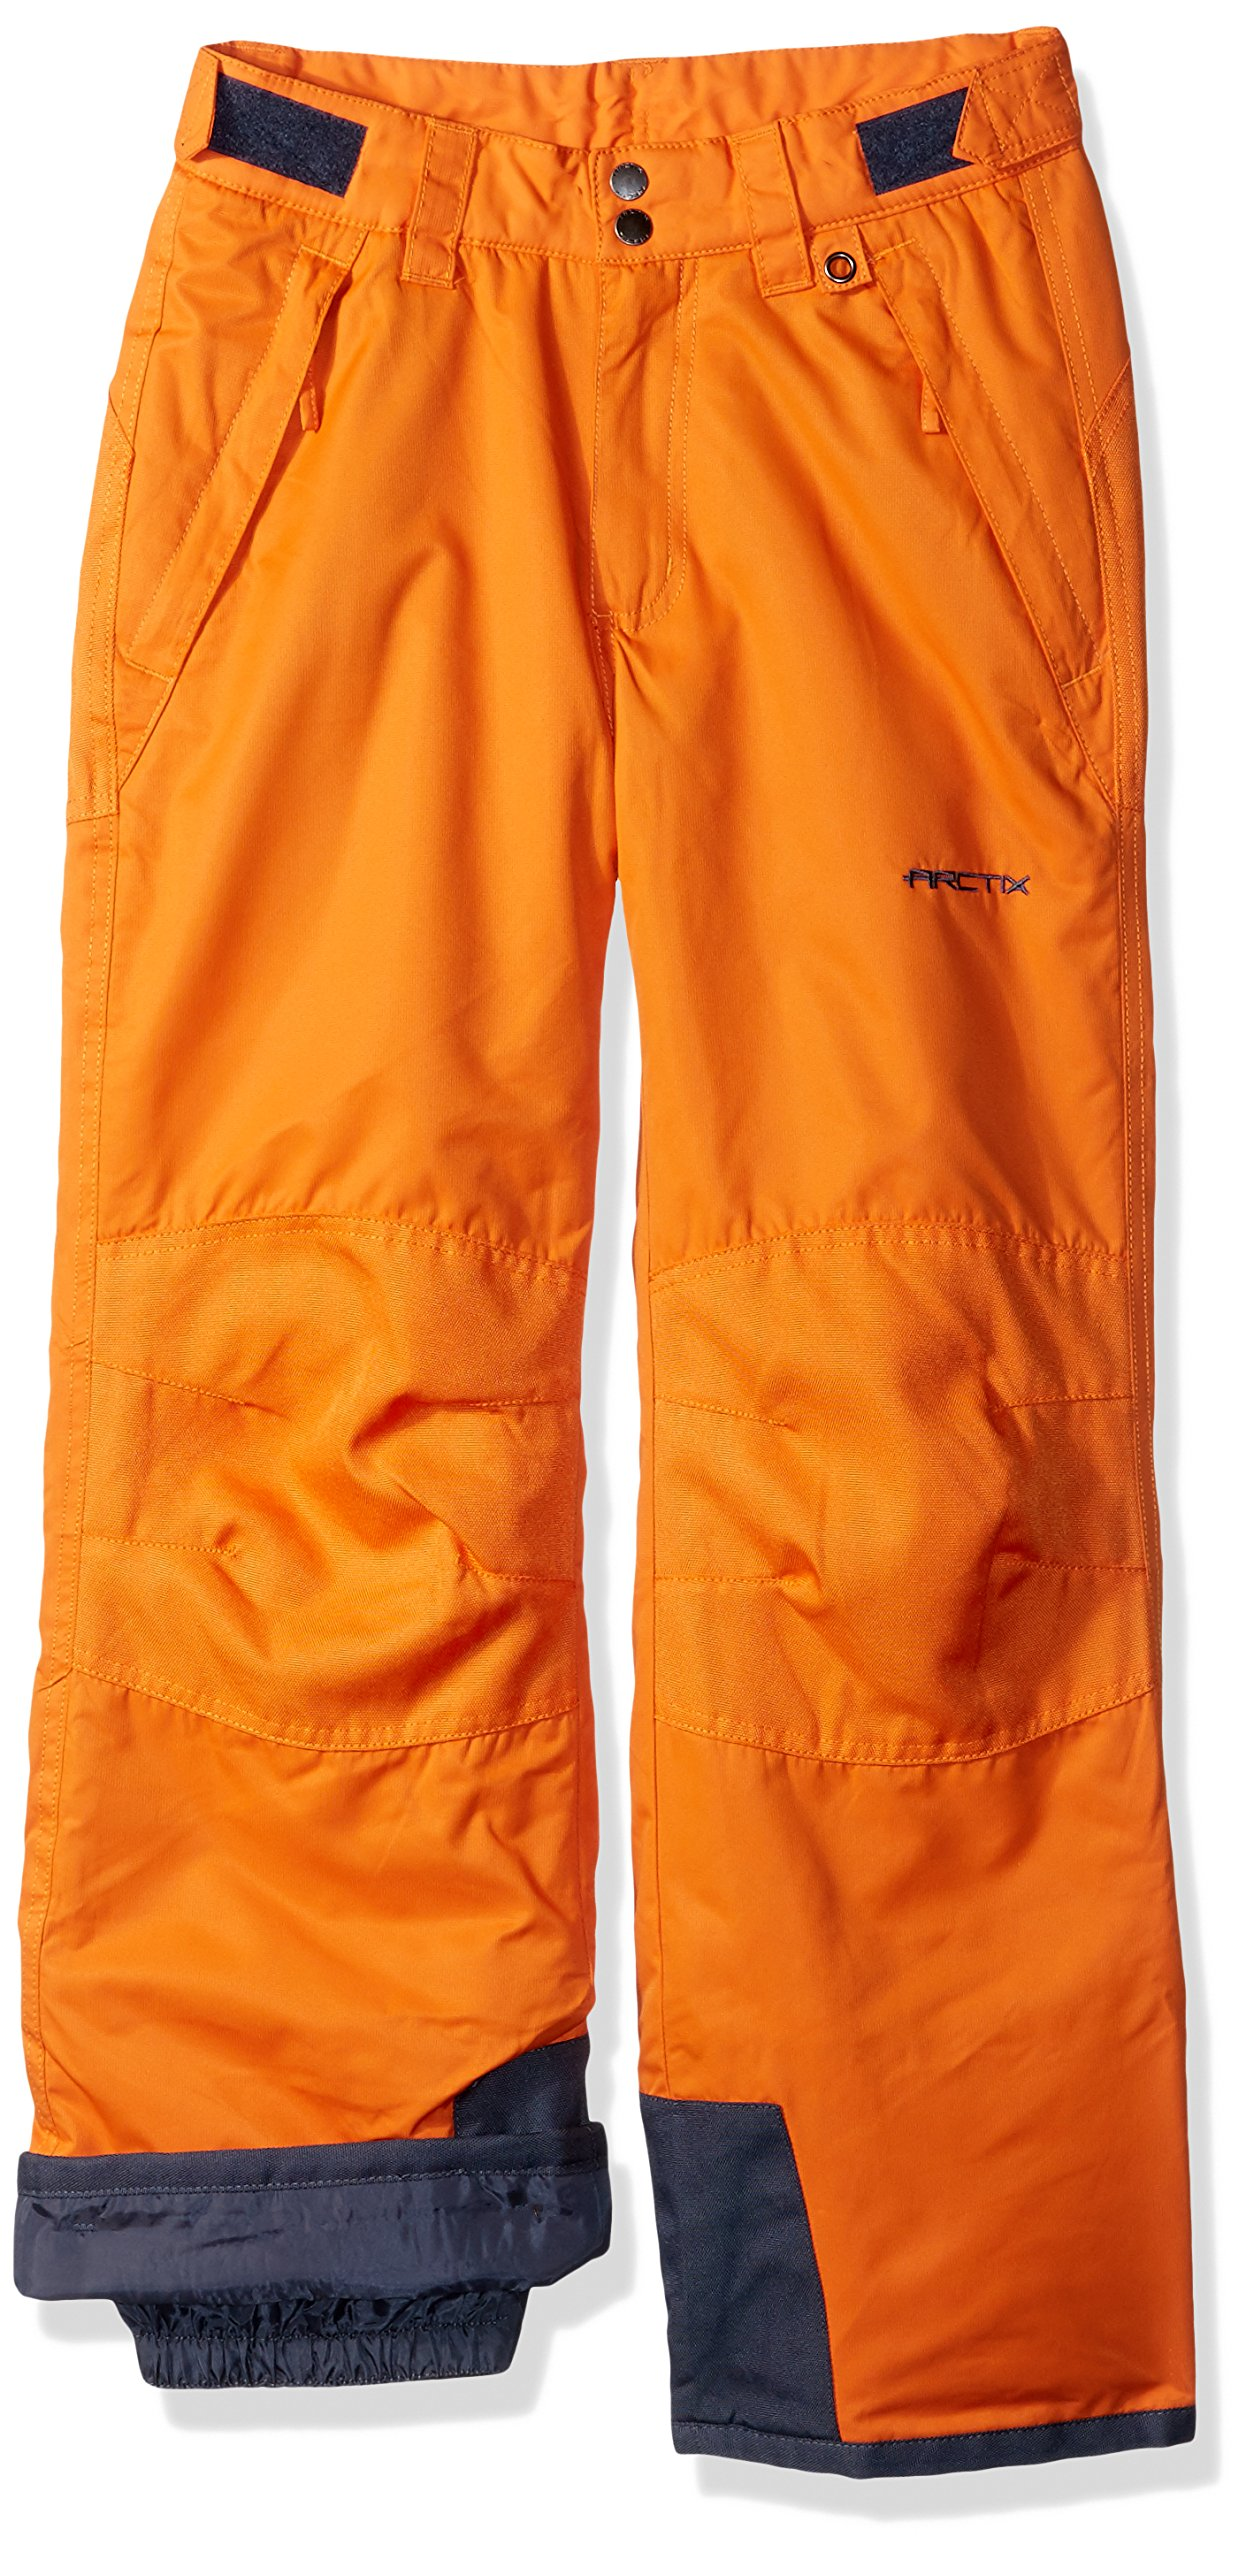 Arctix Youth Snow Pants with Reinforced Knees and Seat, Burnt Orange, X-Large by Arctix